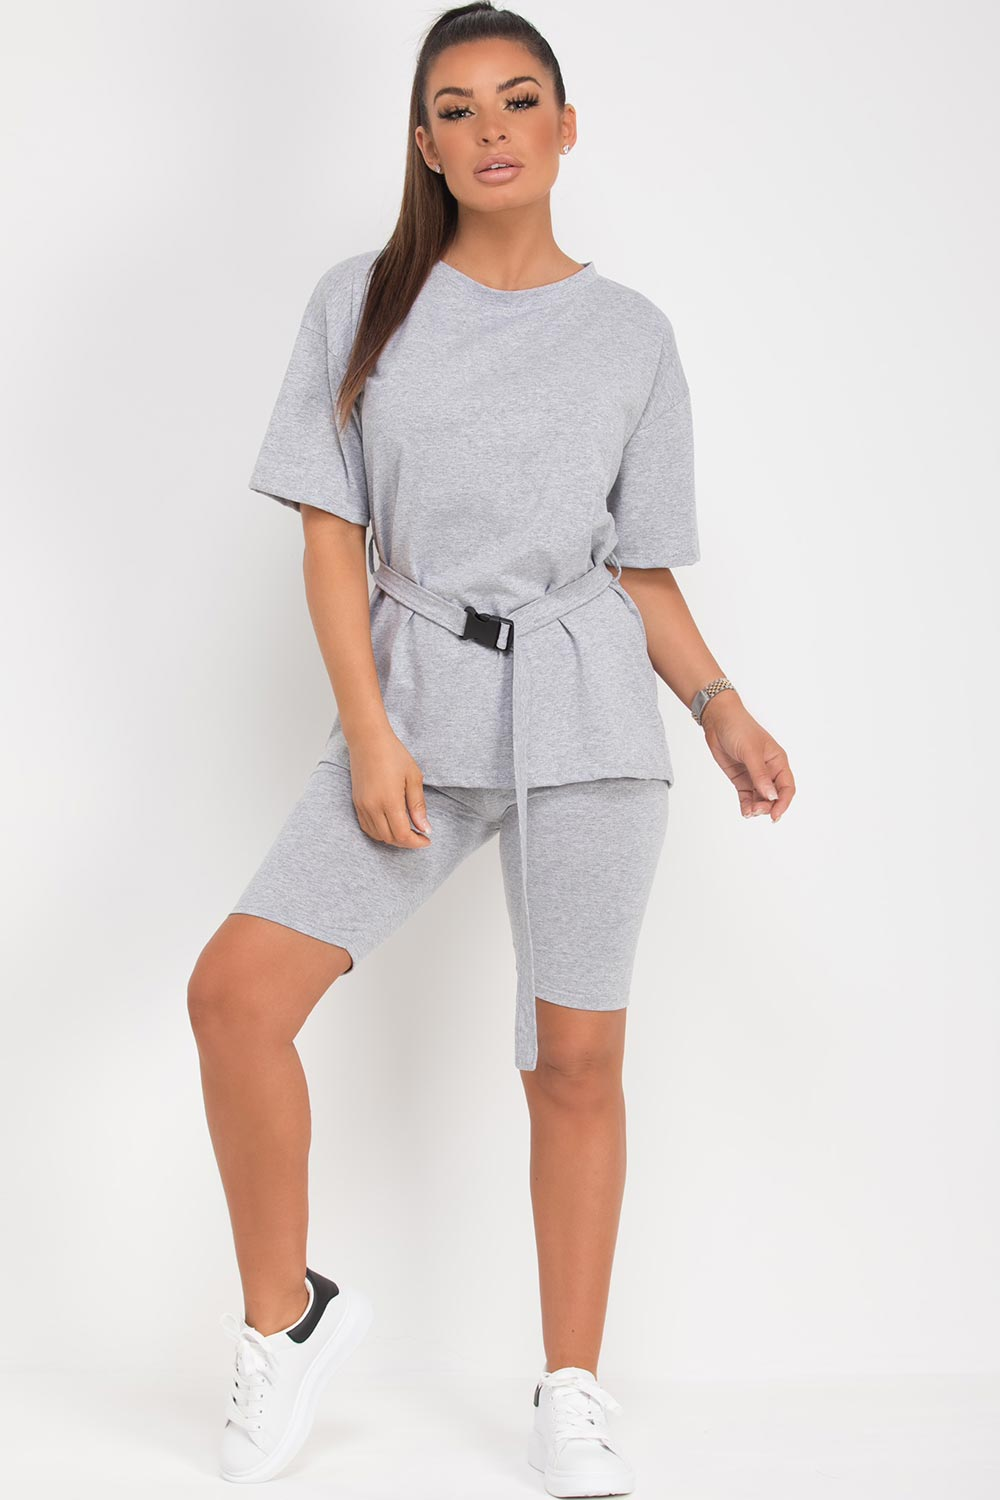 grey cycling shorts and oversized top with belt two piece set